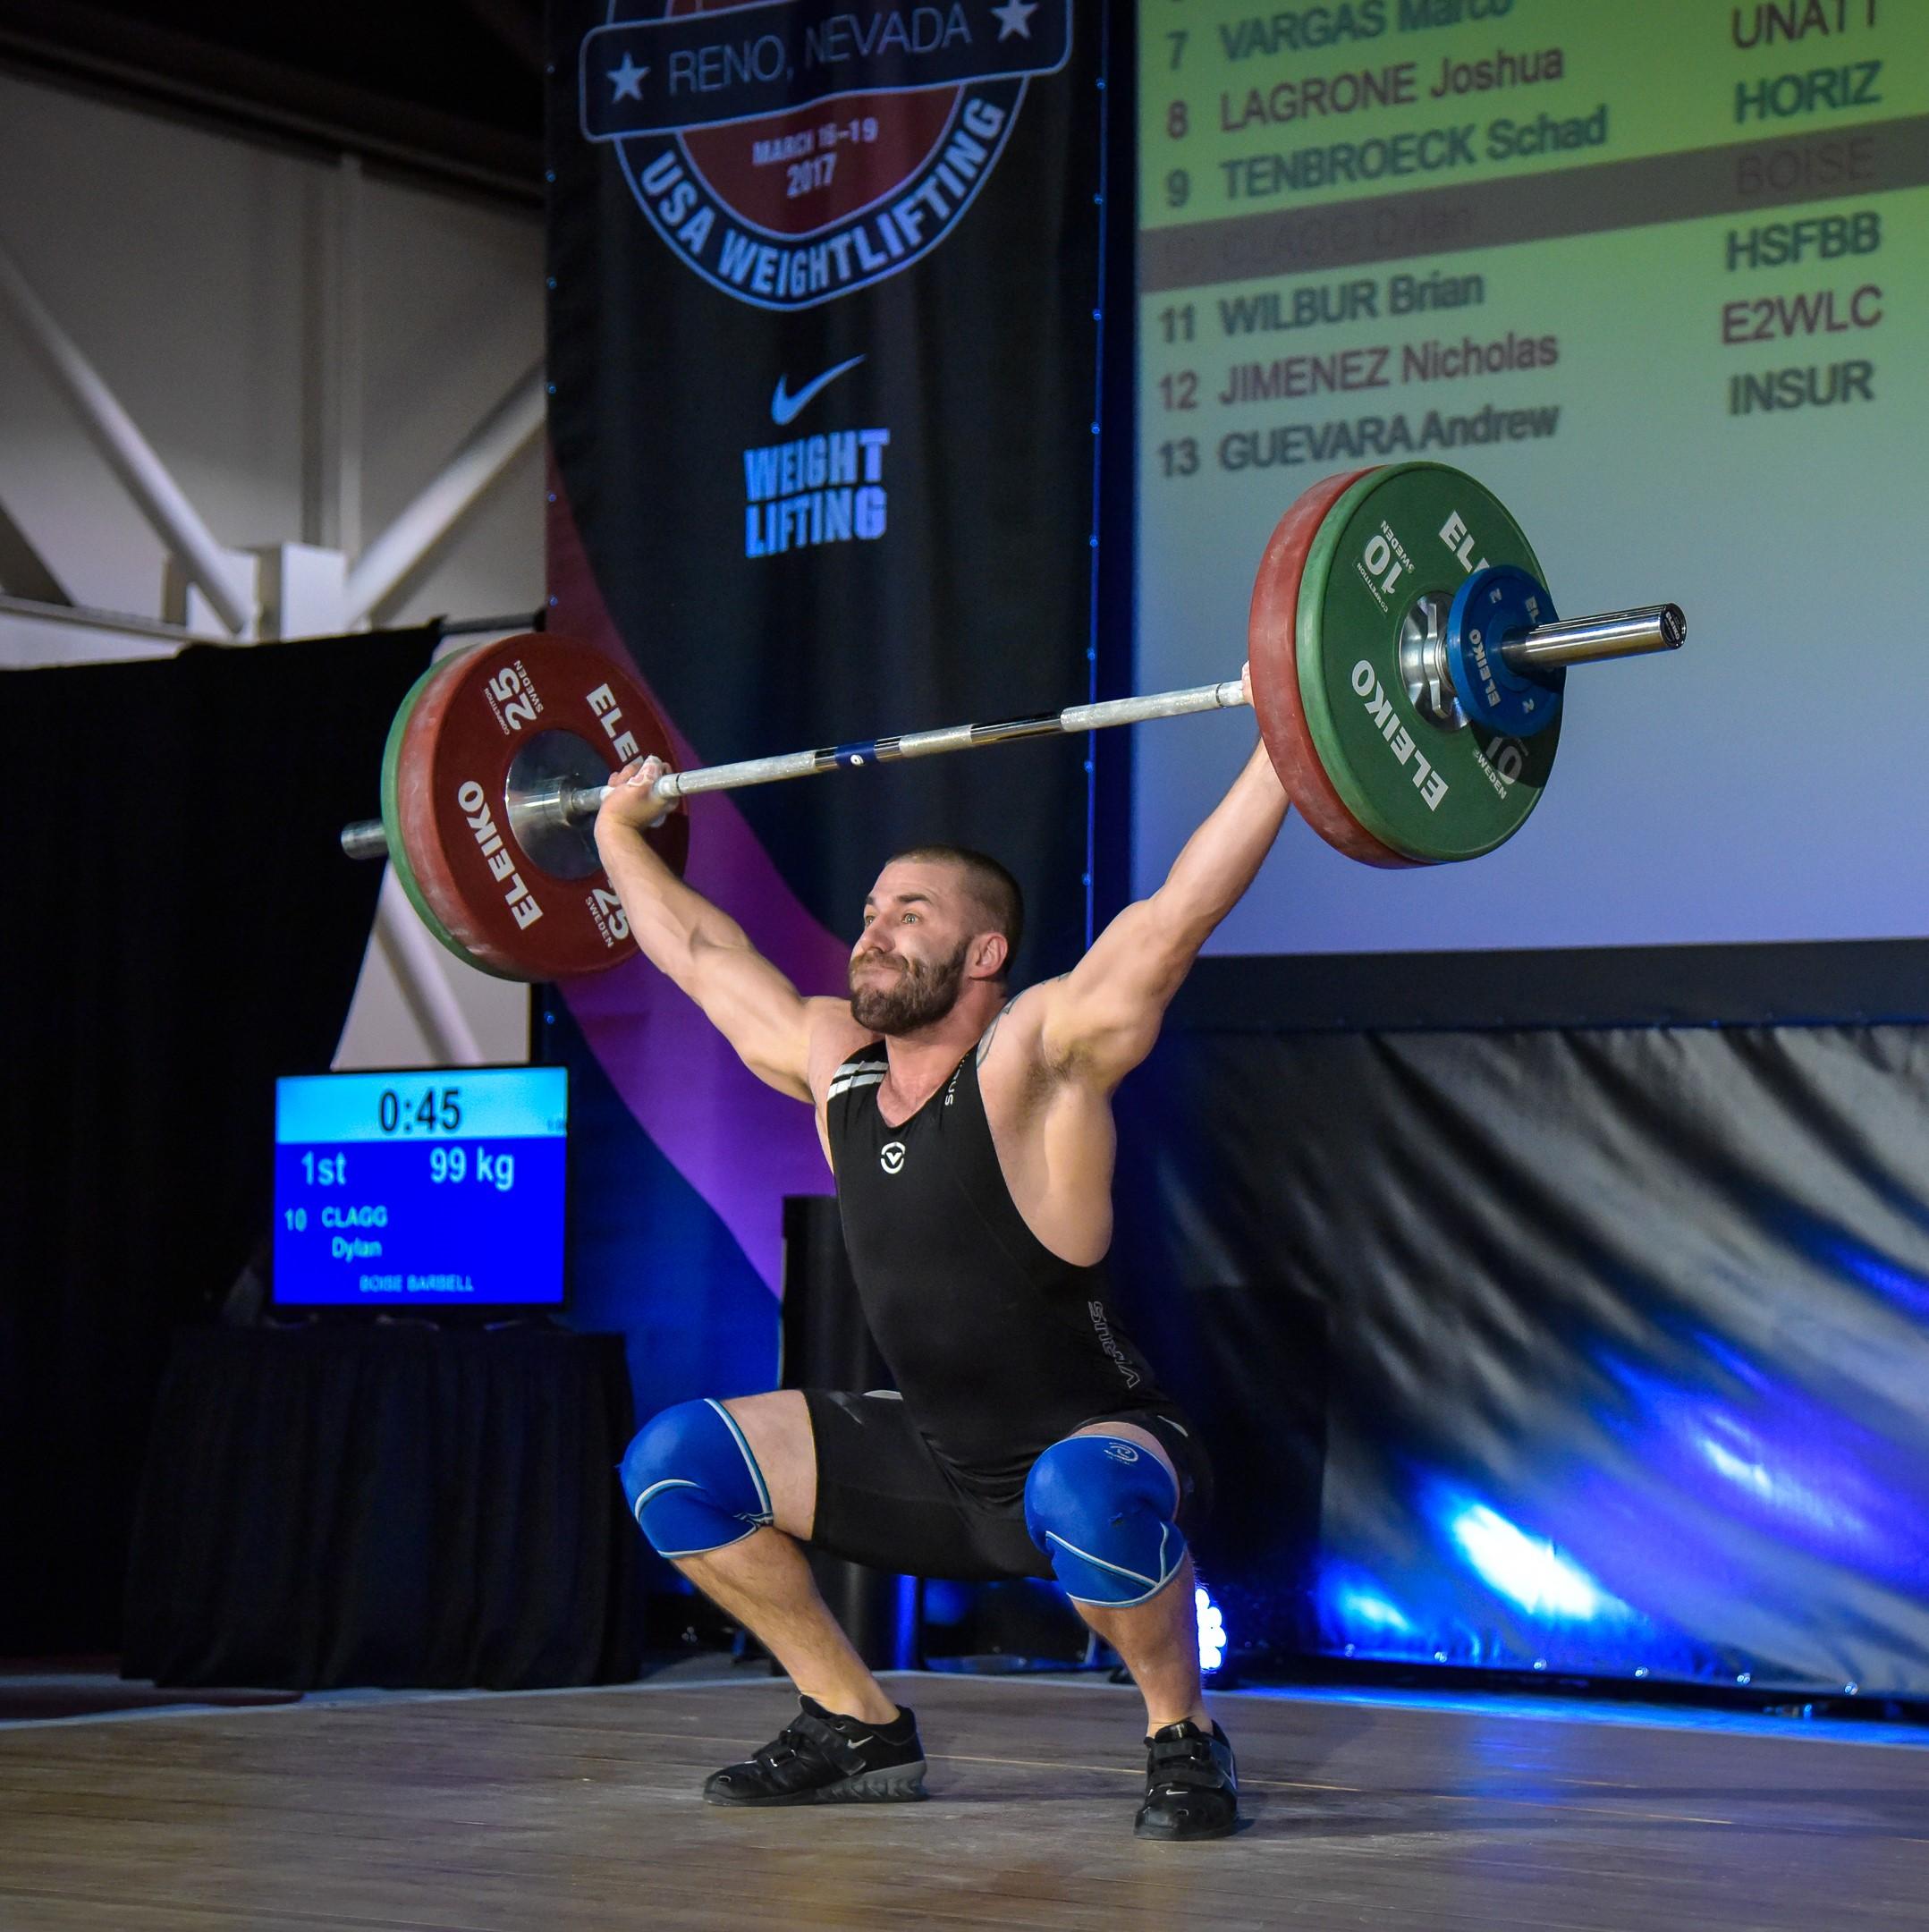 Dylan Clagg (94kg) out of Boise Barbell Club went 102/134/236 at the American Open Series I in Reno, NV.